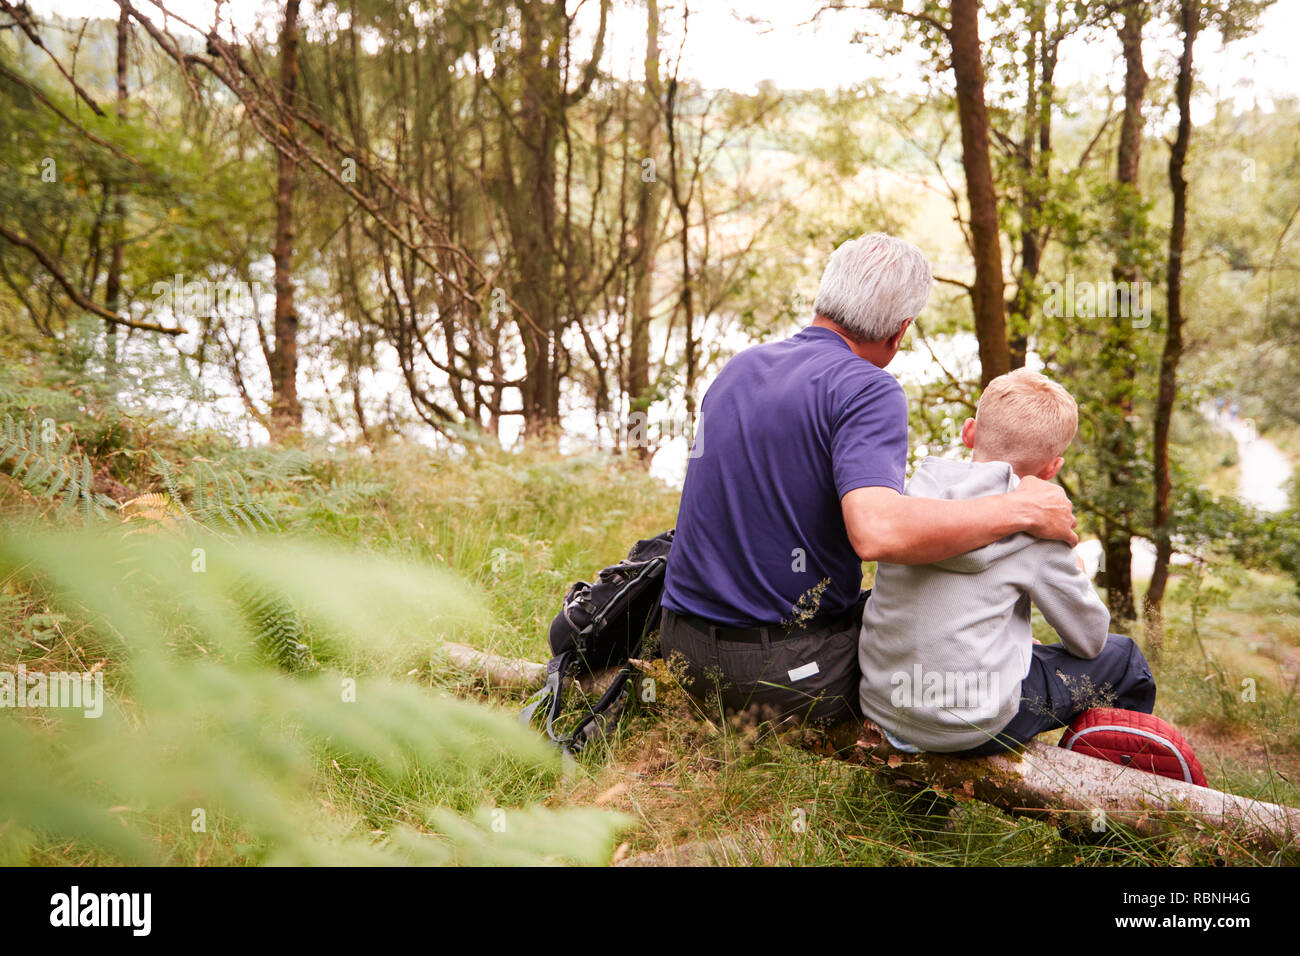 Grandfather and grandson on a hike sitting on a fallen tree in a forest, looking ahead, back view - Stock Image